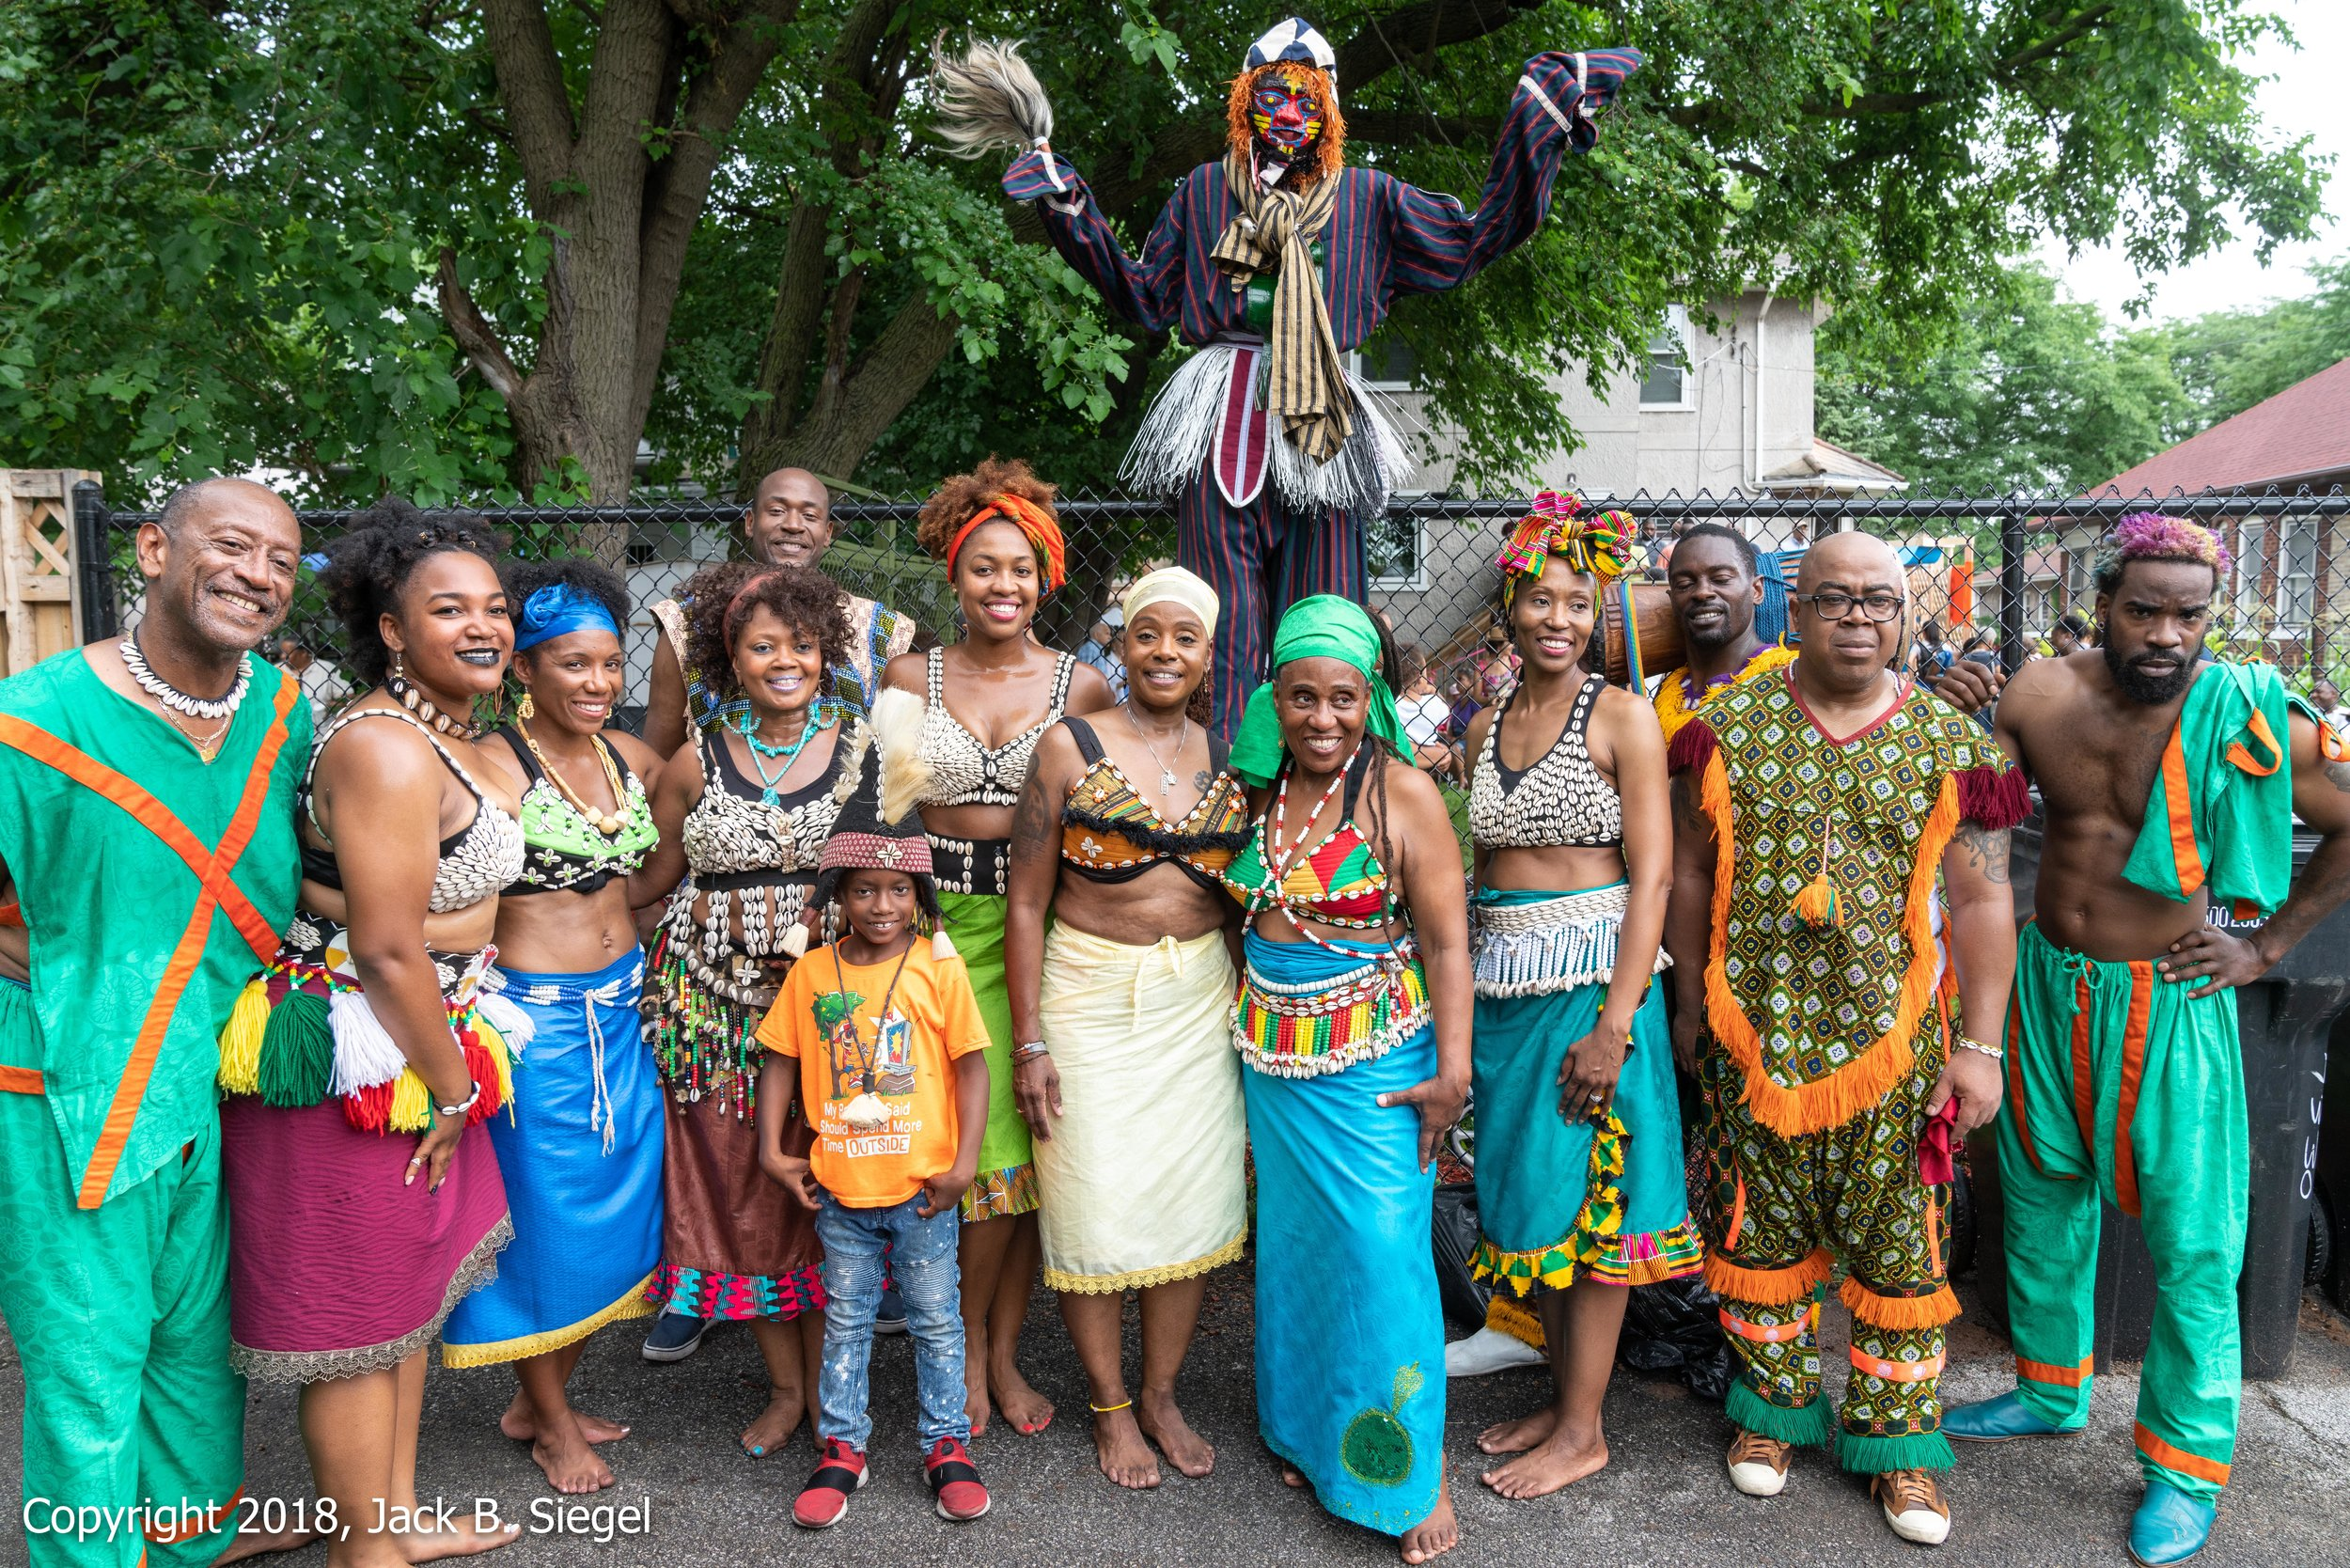 _DS18907PS__Copyright 2018 jpeg_Uche Omoniyi and the African Dance and Music Institute_.jpg